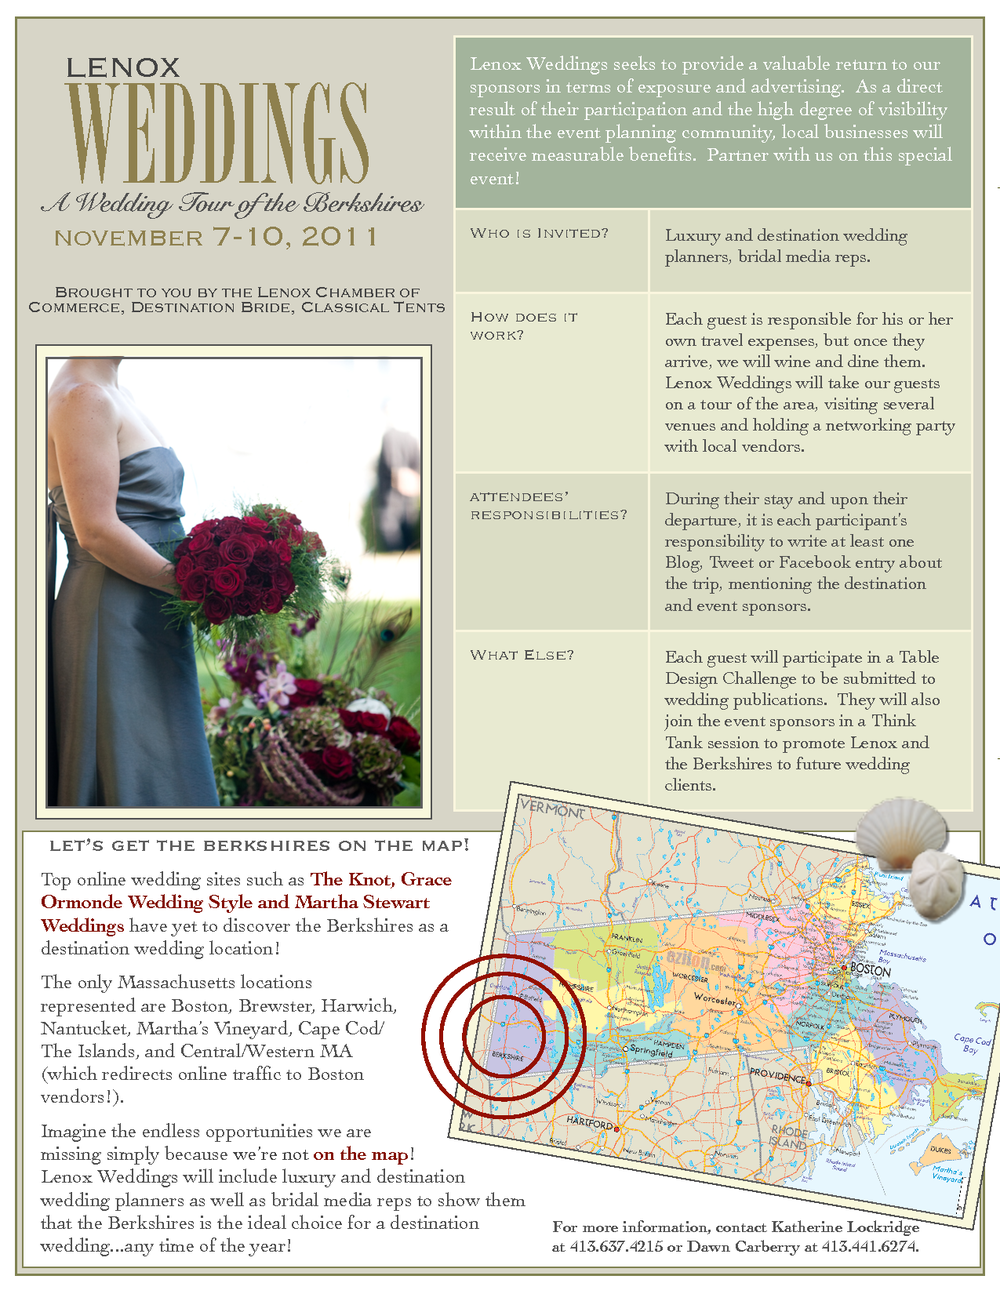 Lenox Wedding Sponsor flyer_150x150_p1.png